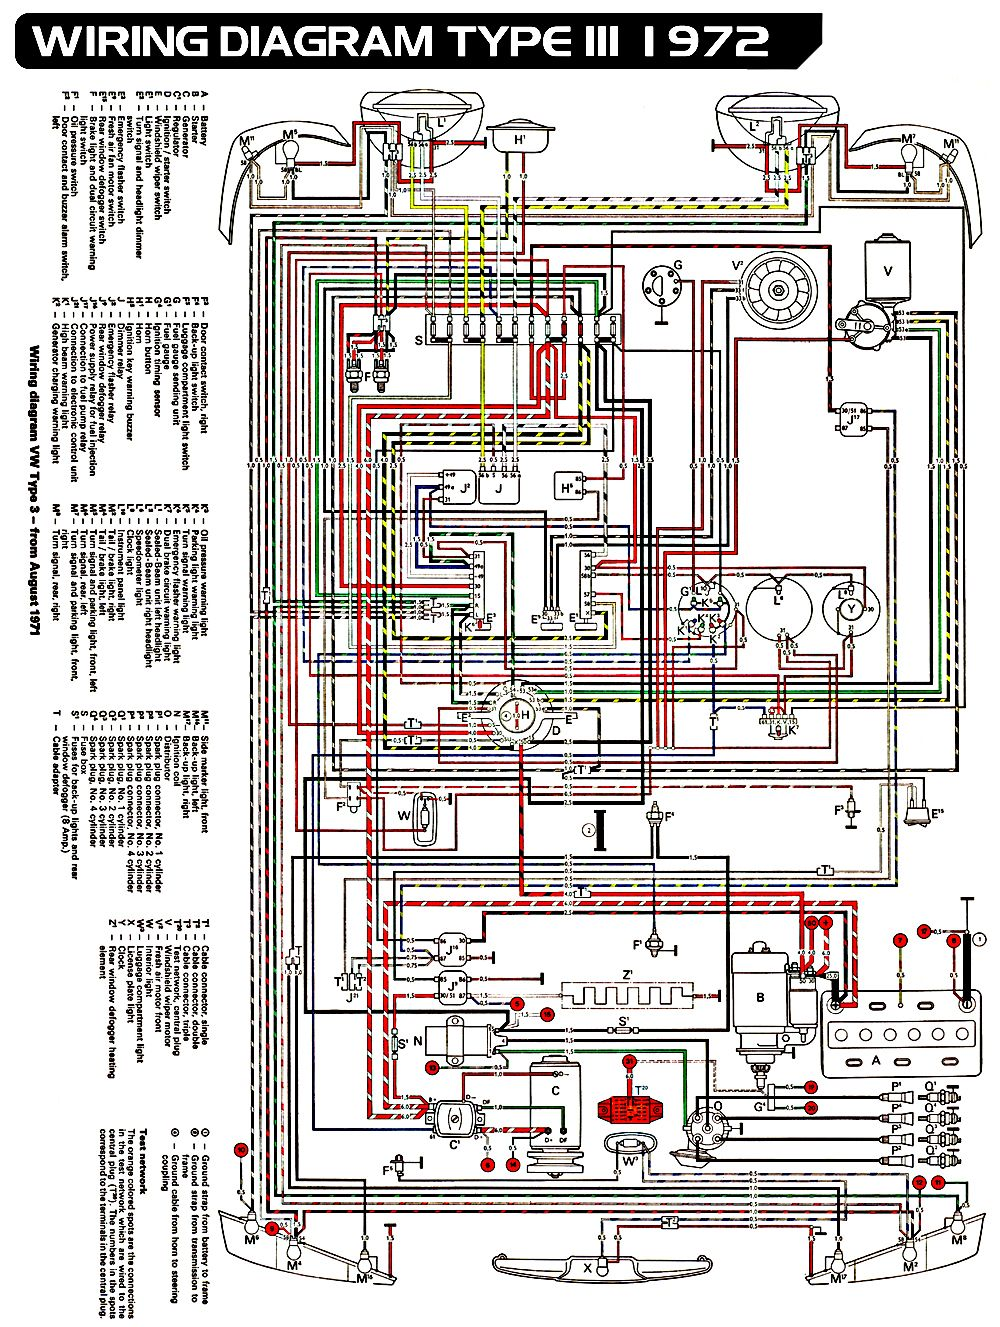 Vw Type 3 Wiring Diagram Vw Beetles Vw Bug Volkswagen Beetle